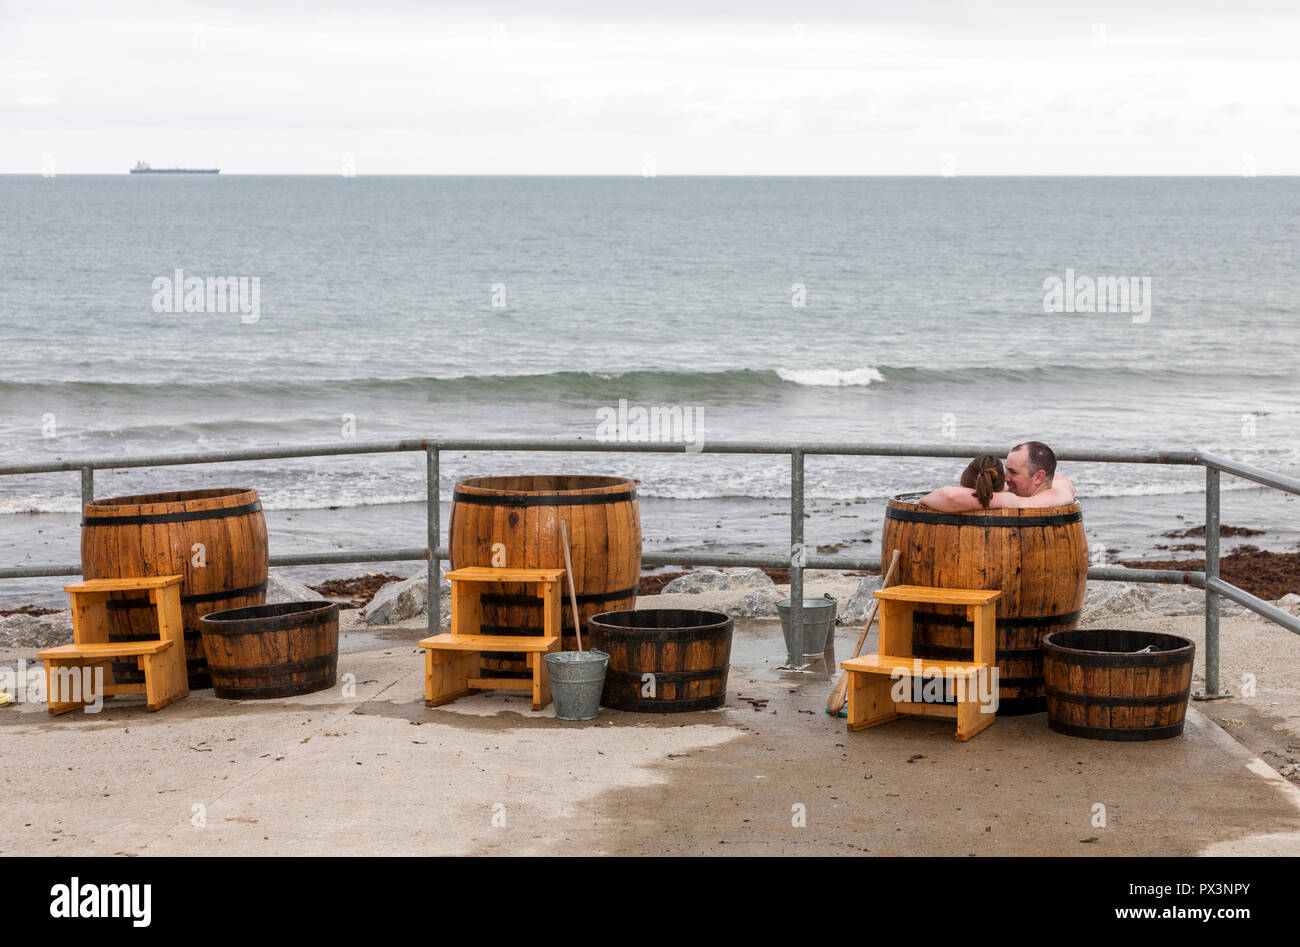 Rocky Bay, Cork, Ireland. 19th October, 2018. Will Condon and Maria O' Sullivan from Nohoval enjoying a hot seaweed bath on a cold October day in Rocky Bay, Co. Cork, Ireland. Credit: David Creedon/Alamy Live News - Stock Image